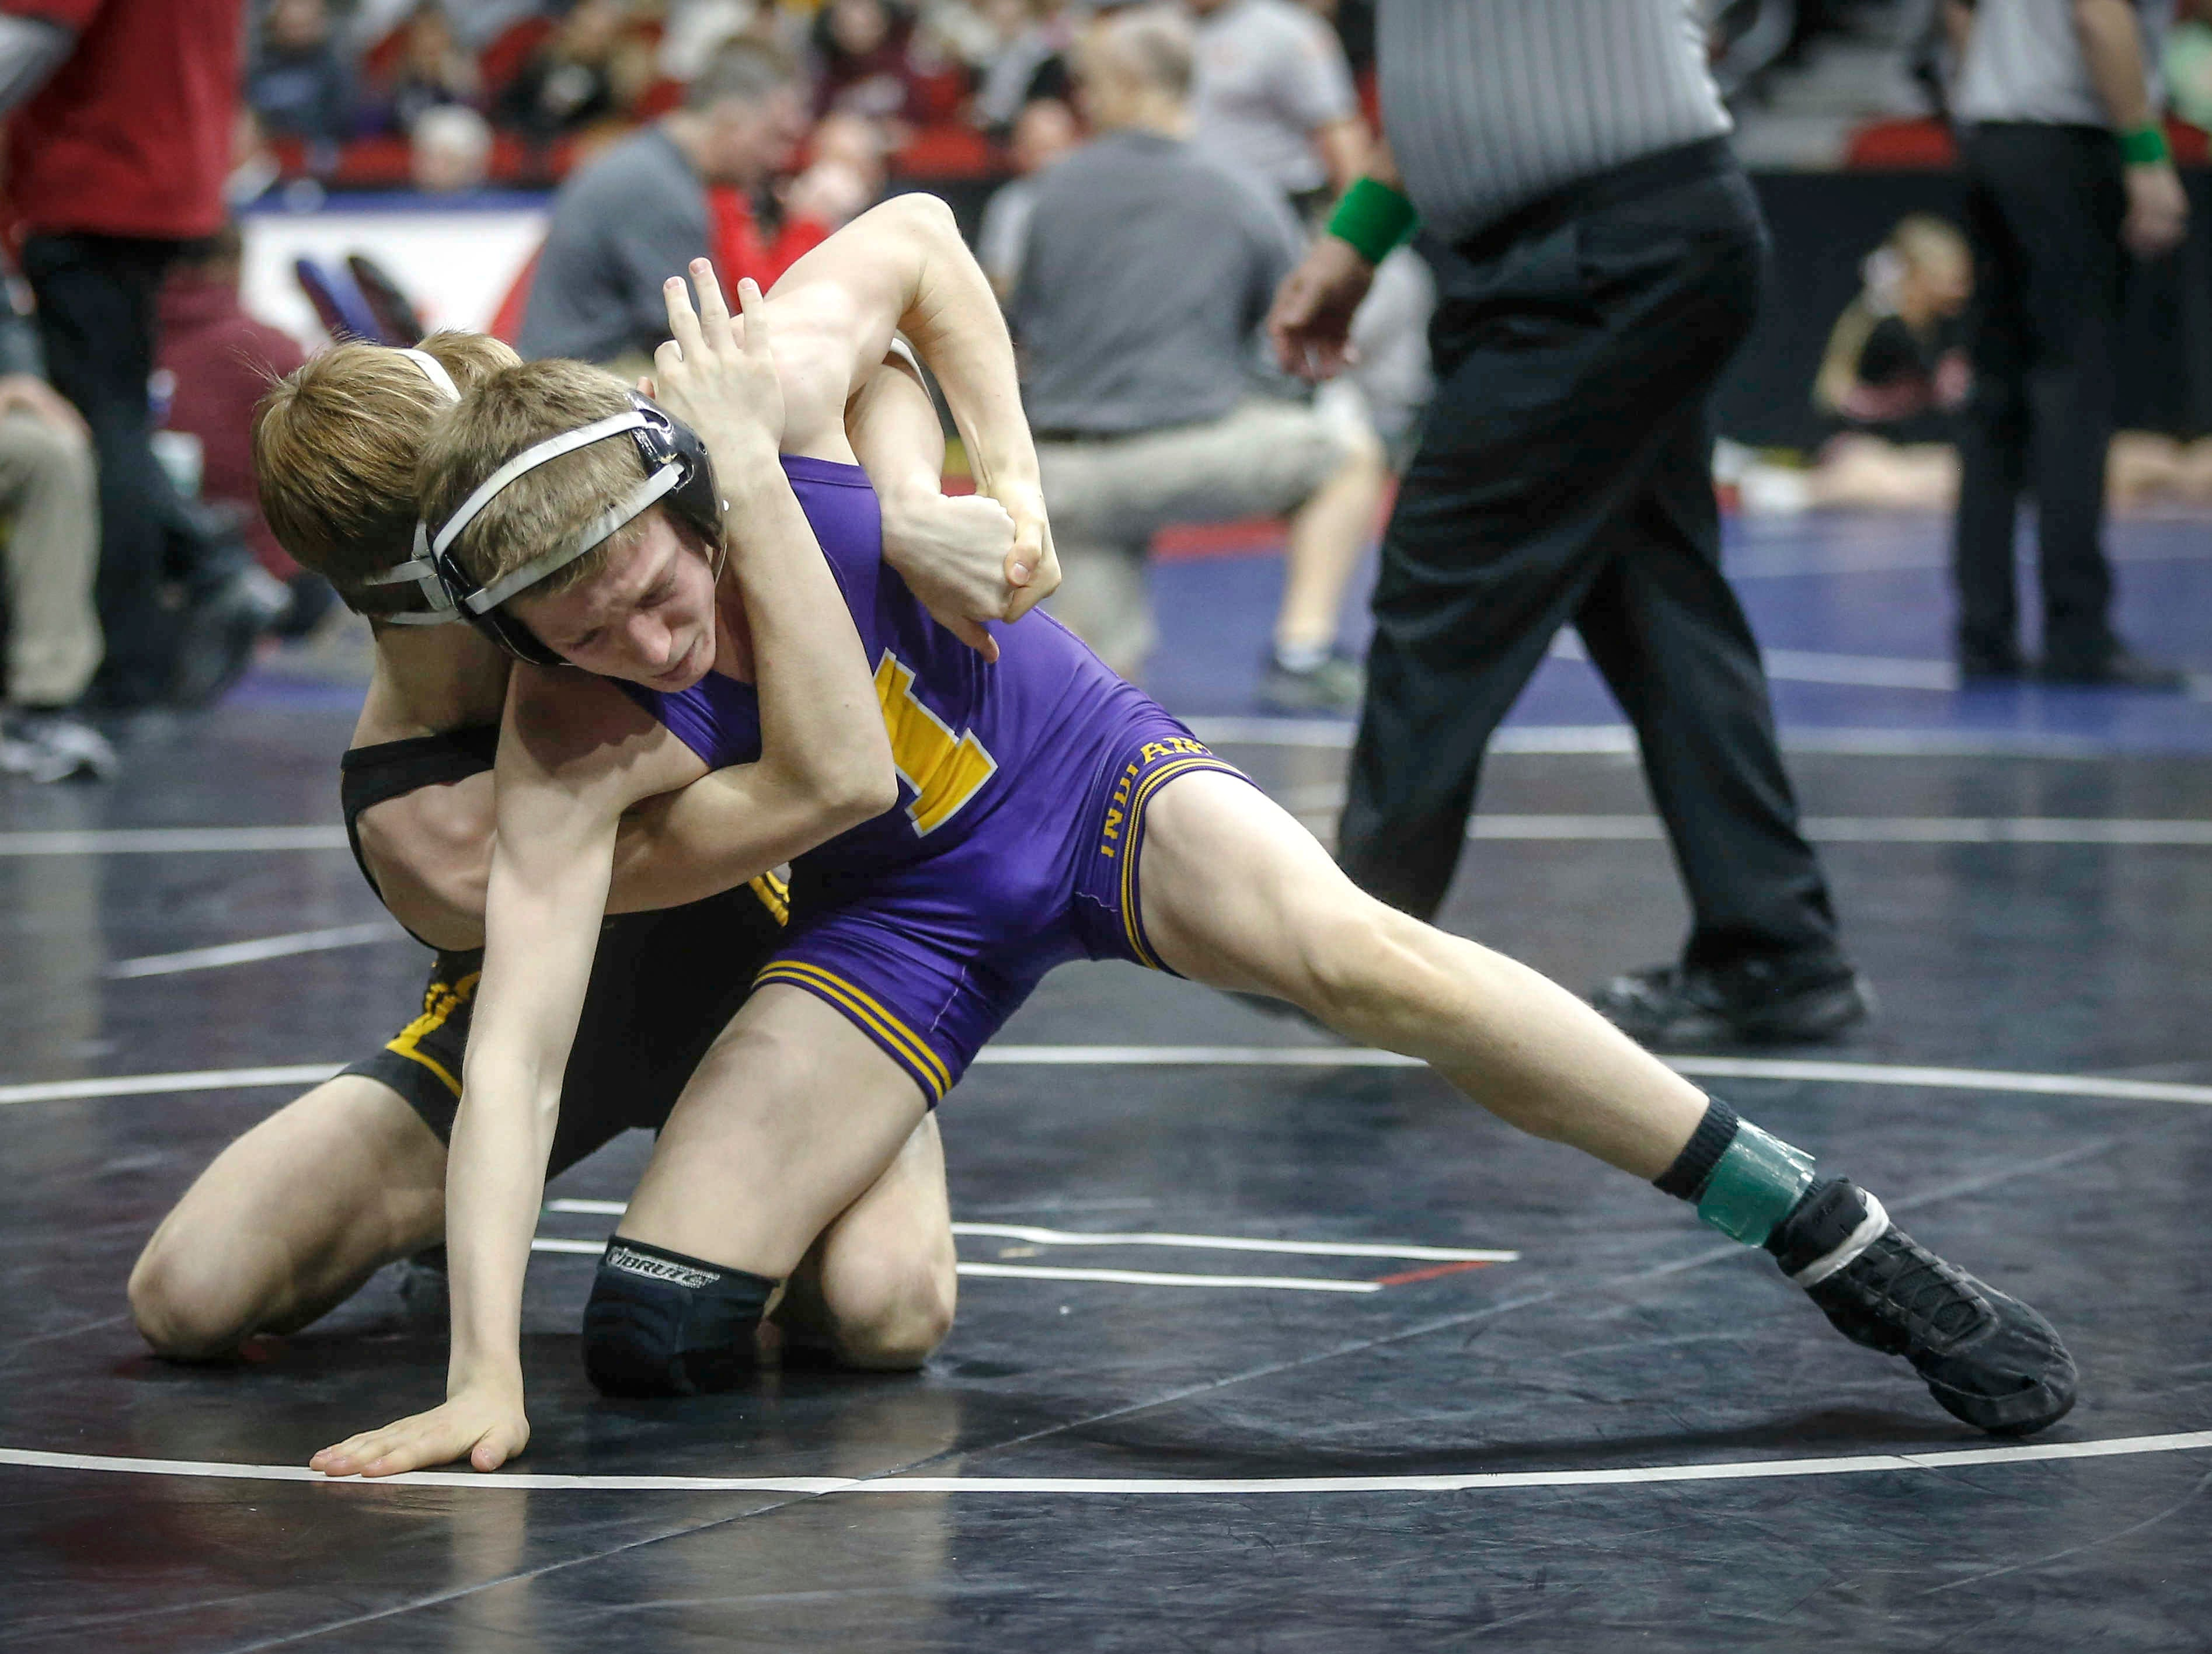 Ankeny's Trever Anderson breaks down Indianola's Ryder Downey in their match at 106 pounds during the state wrestling quarterfinals on Friday, Feb. 15, 2019, at Wells Fargo Arena in Des Moines.